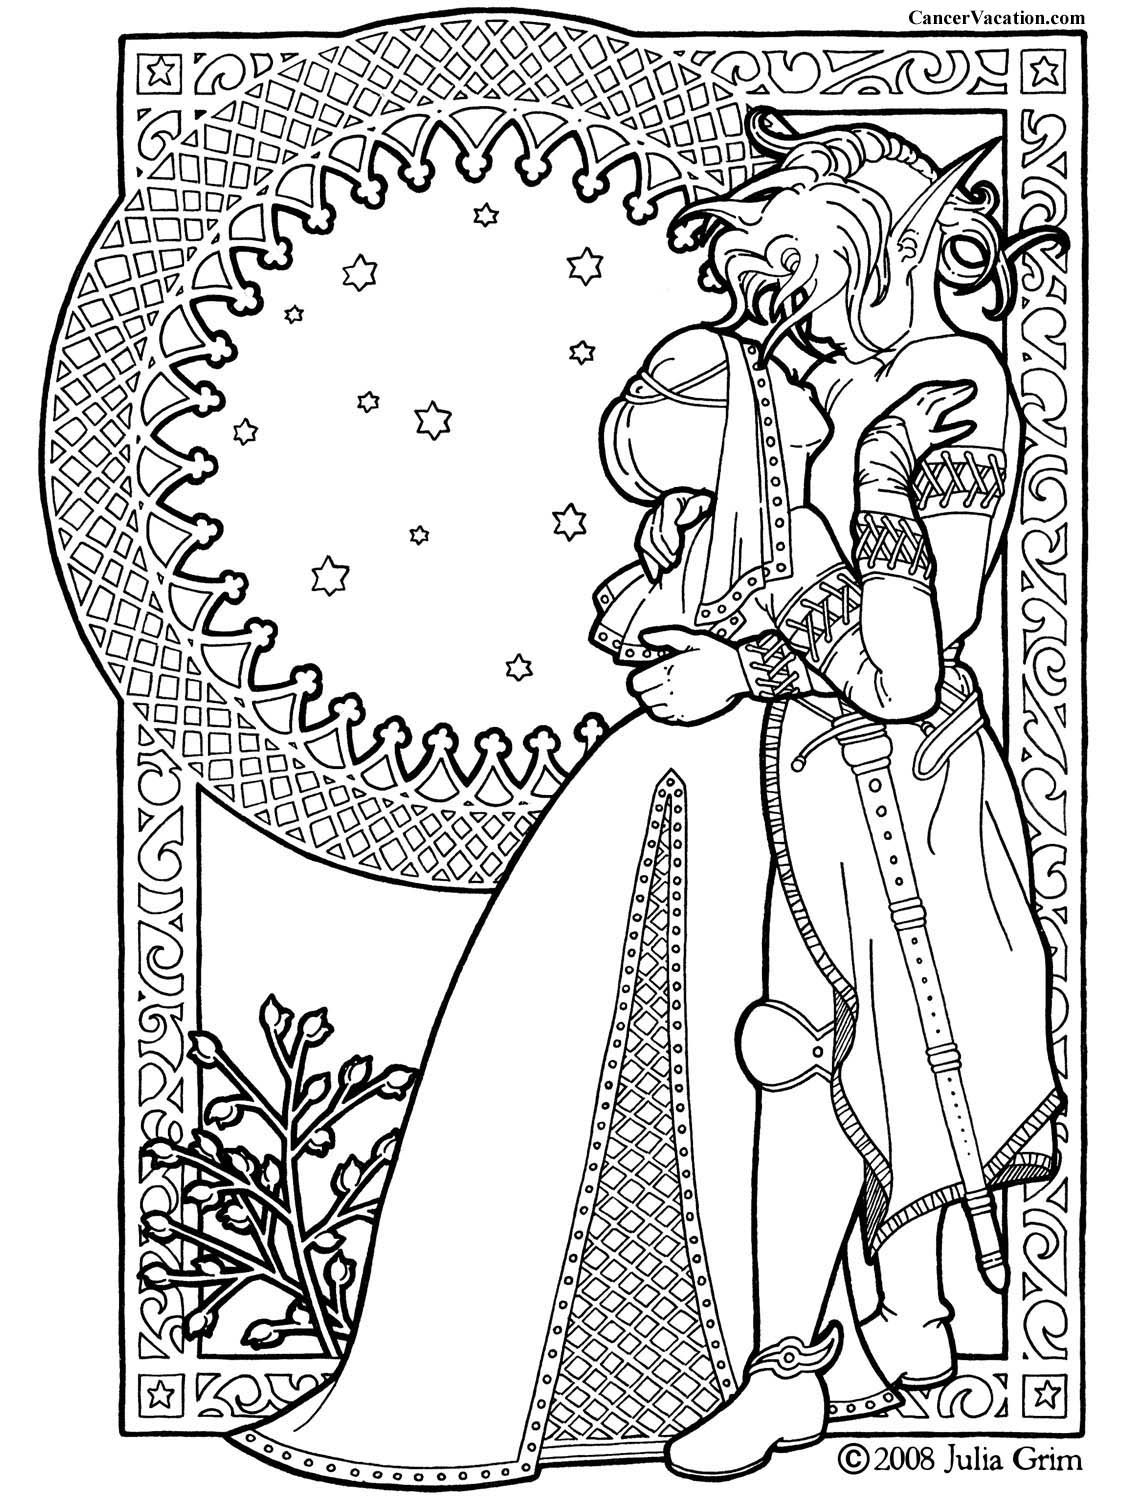 adult fantasy coloring book cancer vacation free coloring book pages from the starving artist - Fantasy Coloring Pages Adults